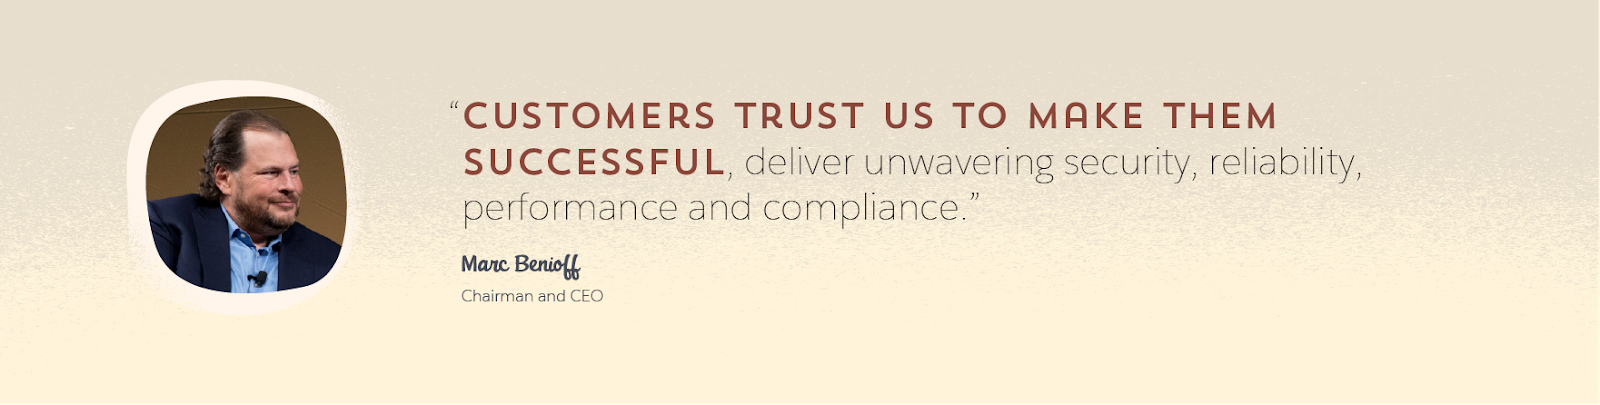 "Graphic featuring a photo of Marc Benioff, Salesforce chairman and CEO, and a quote from him: ""Customers trust us to make them successful, deliver unwavering security, reliability, performance and compliance."""